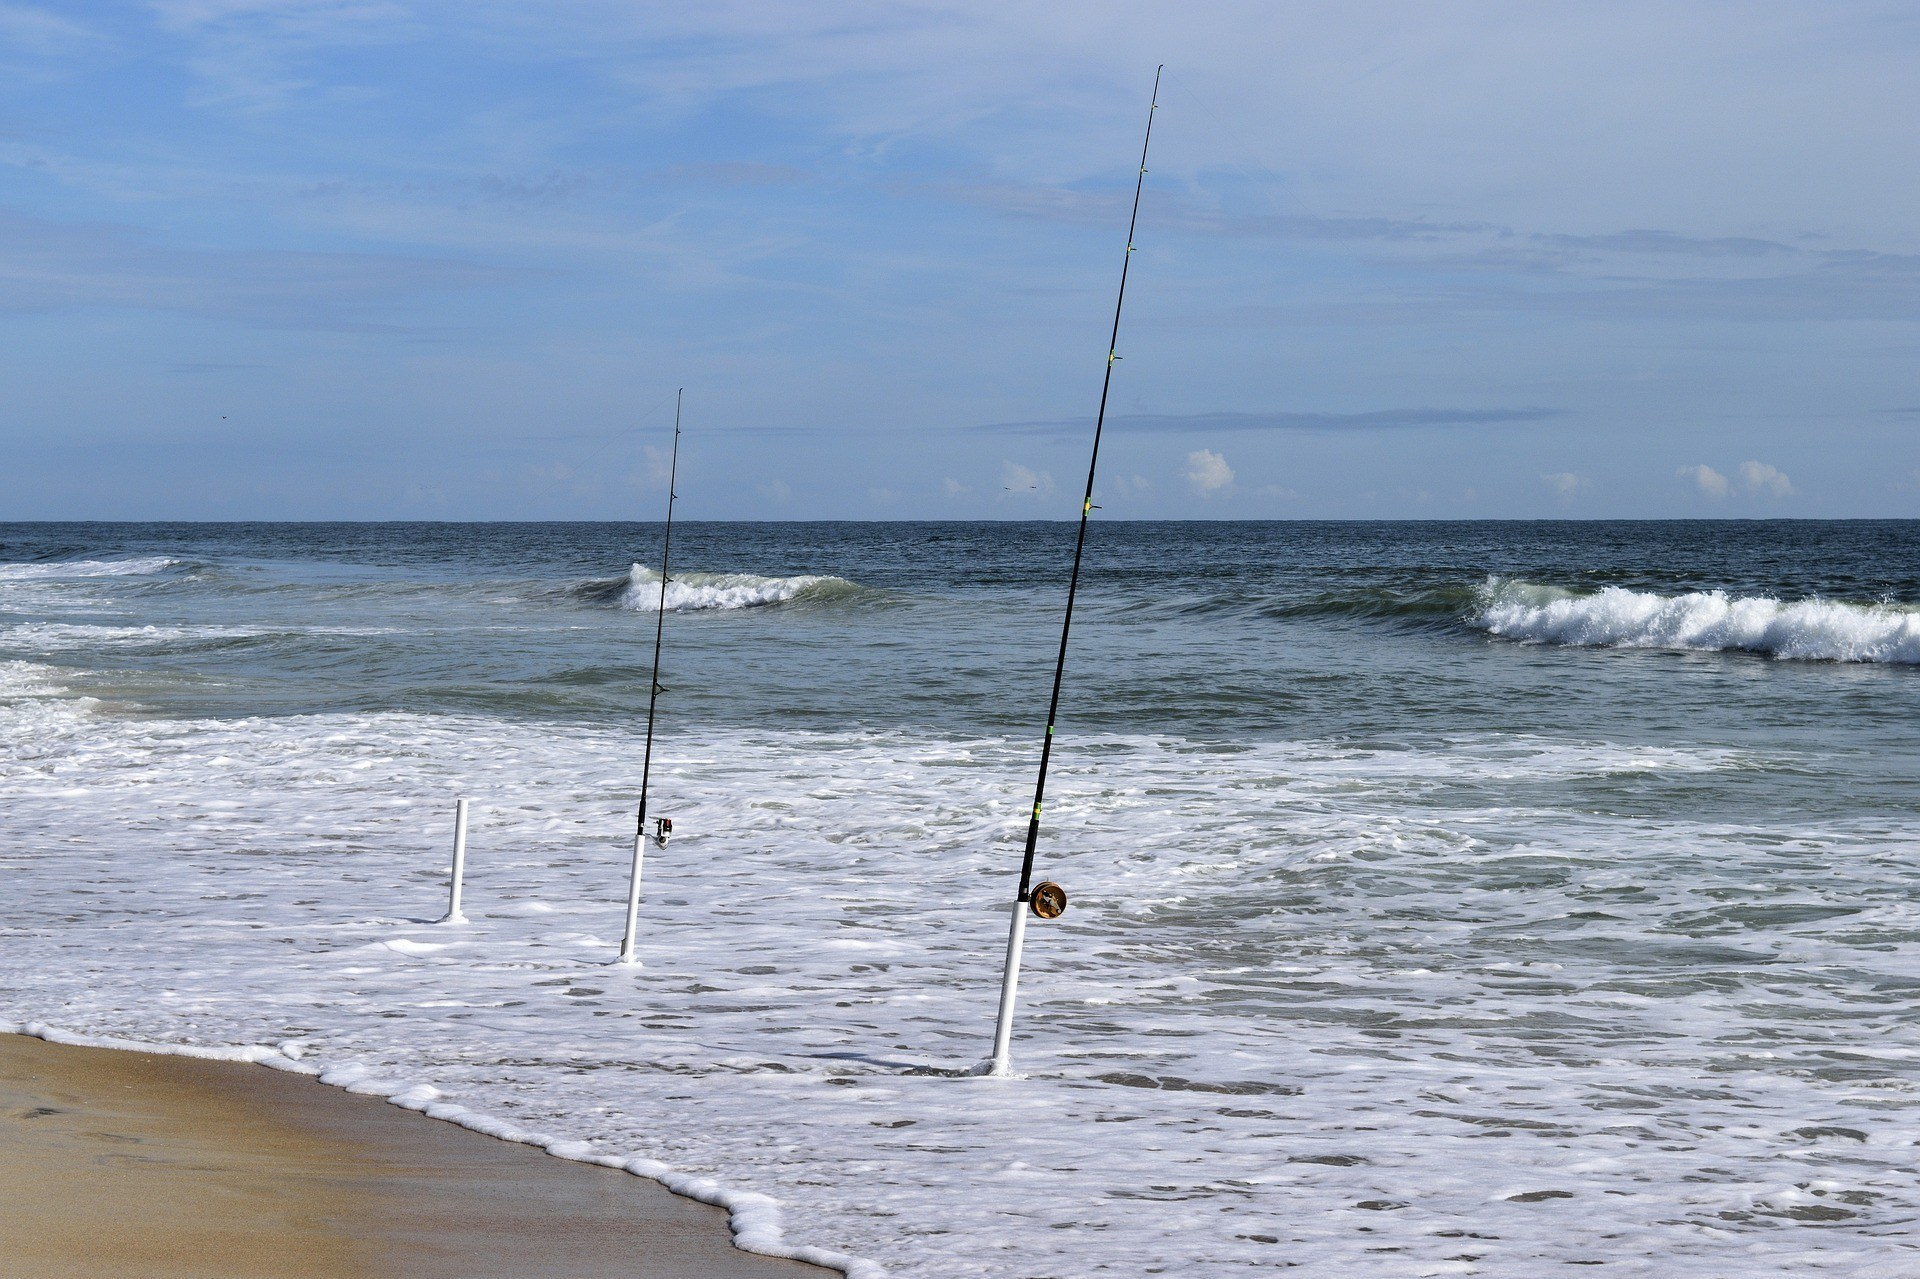 Surf fishing rods in holders on beach.